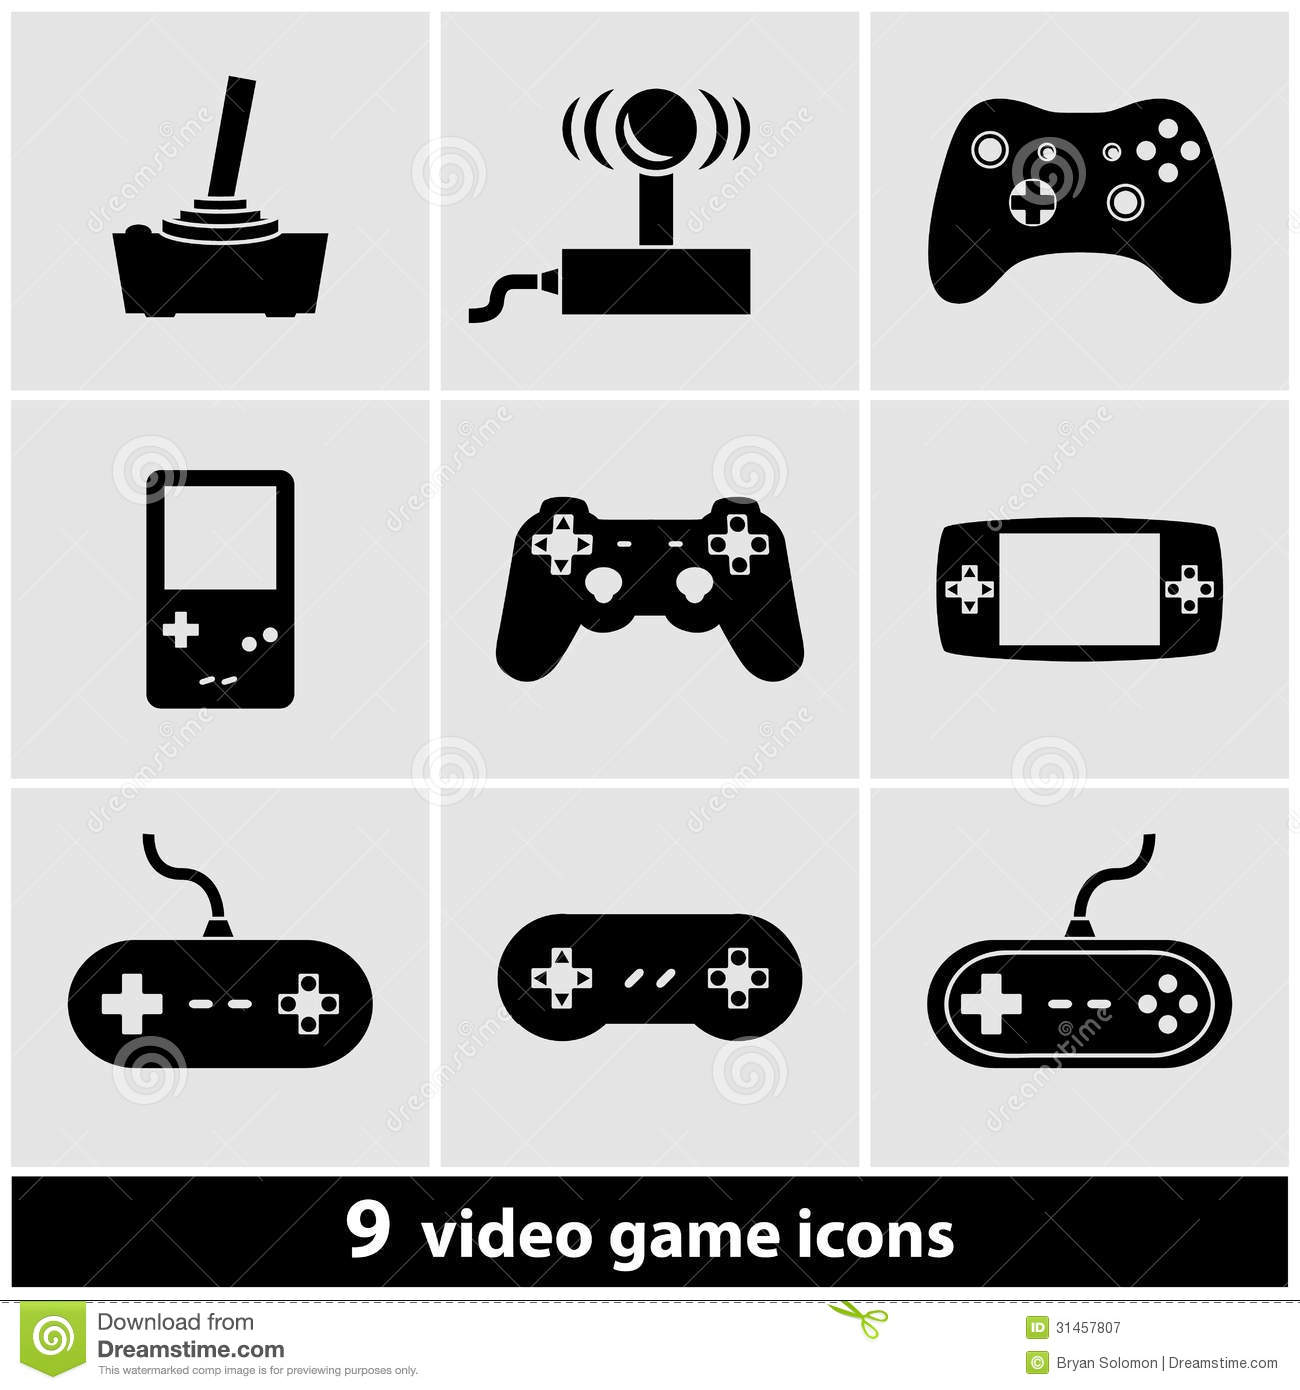 video game icon set royalty free stock photography image